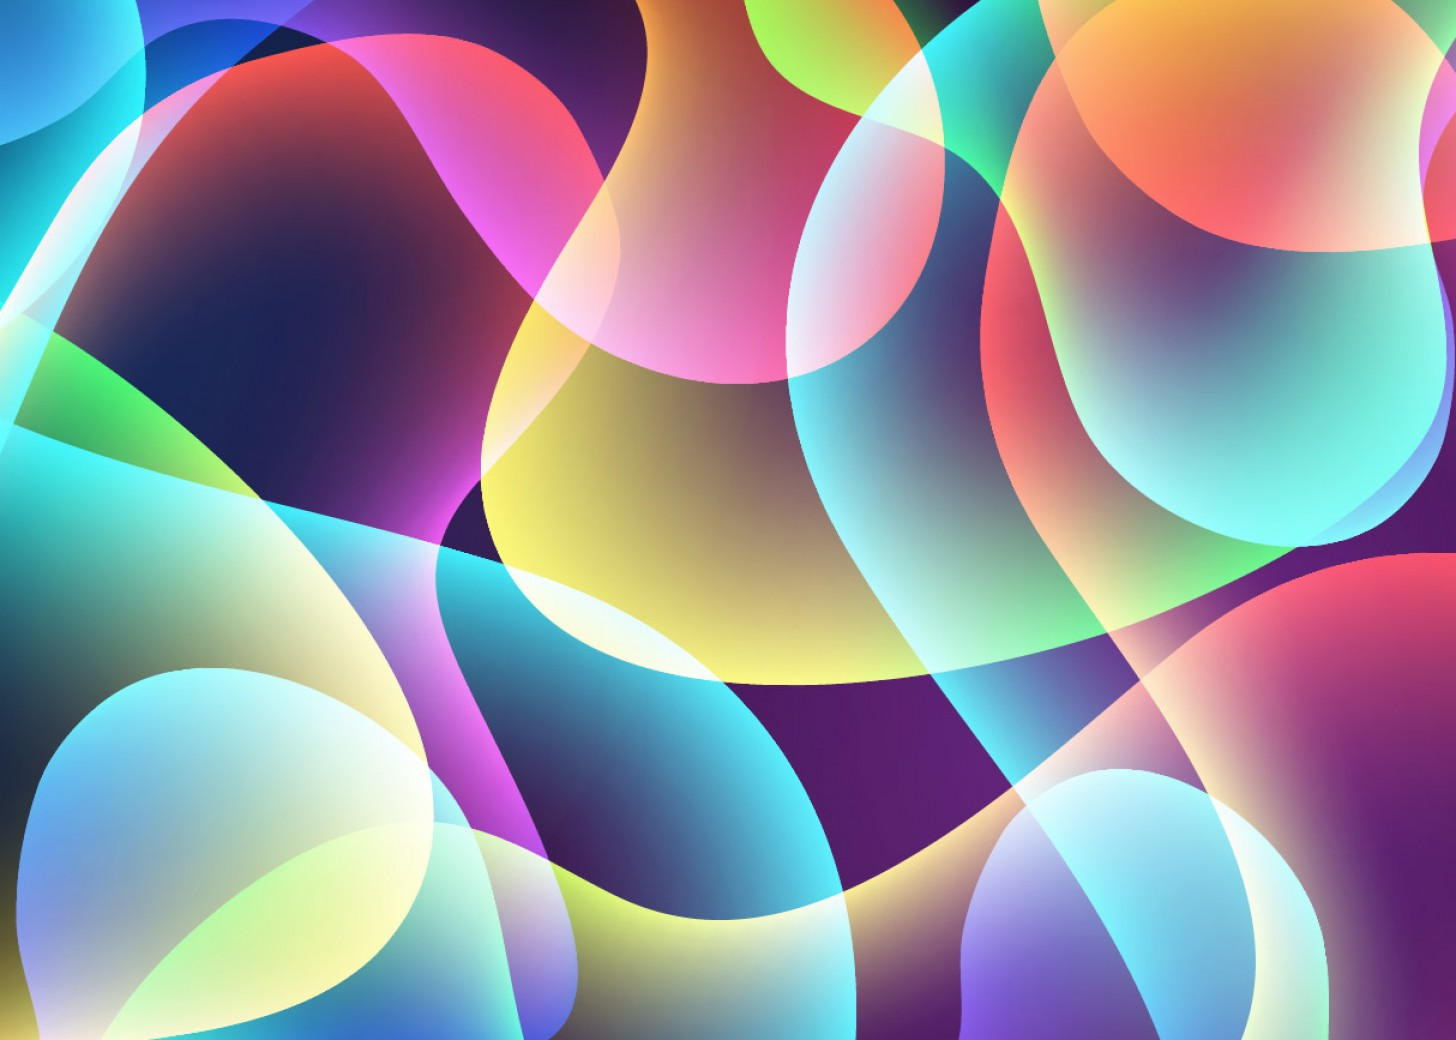 Vector Tut's Blends: Create A Vibrant Abstract Vector Design Illustrator